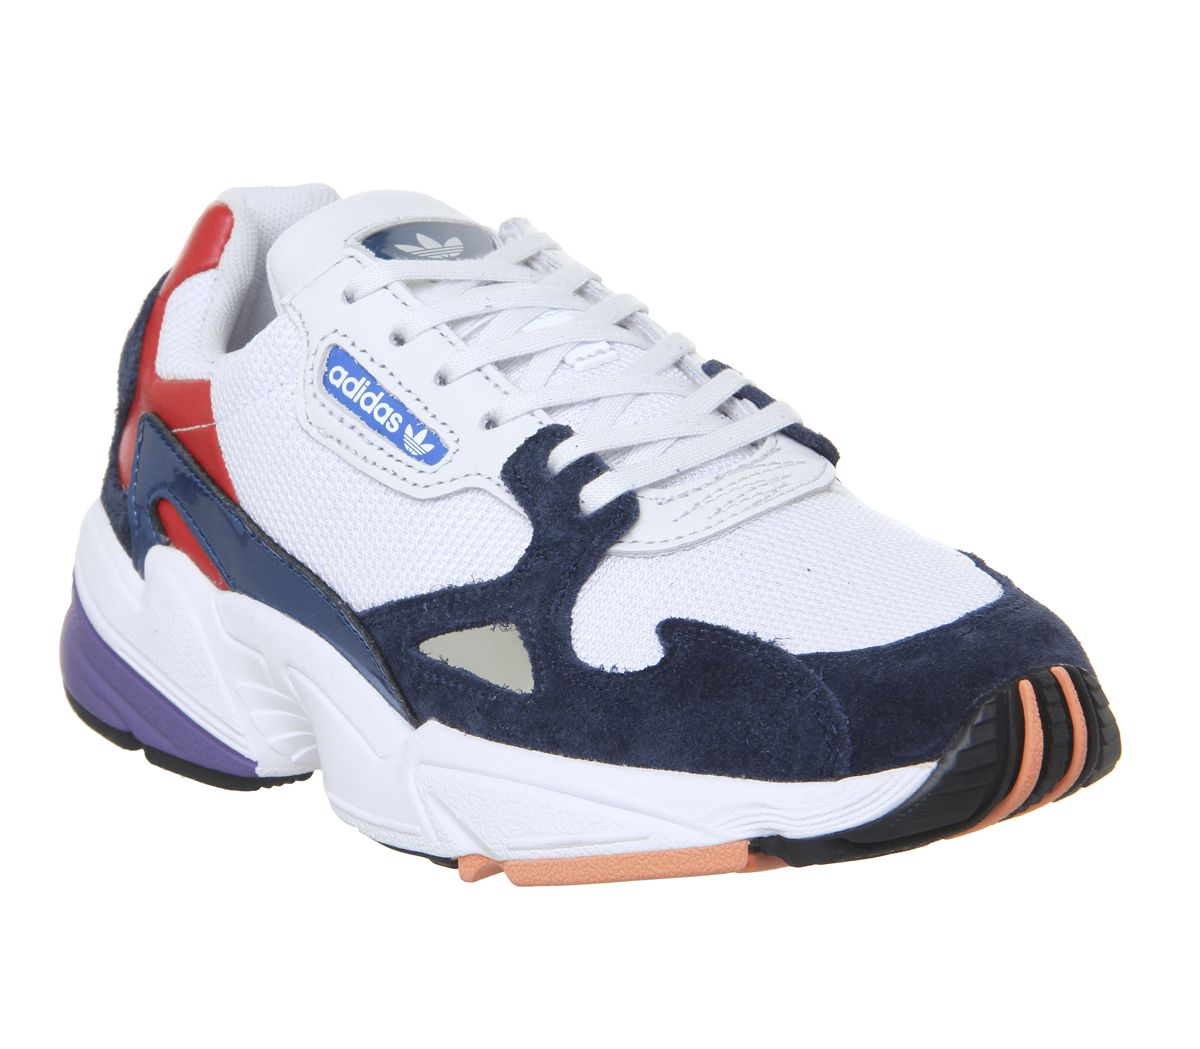 buy online e0f1a 495f7 adidas Falcon Trainers Crystal White Collegiate Navy Red - Hers trainers